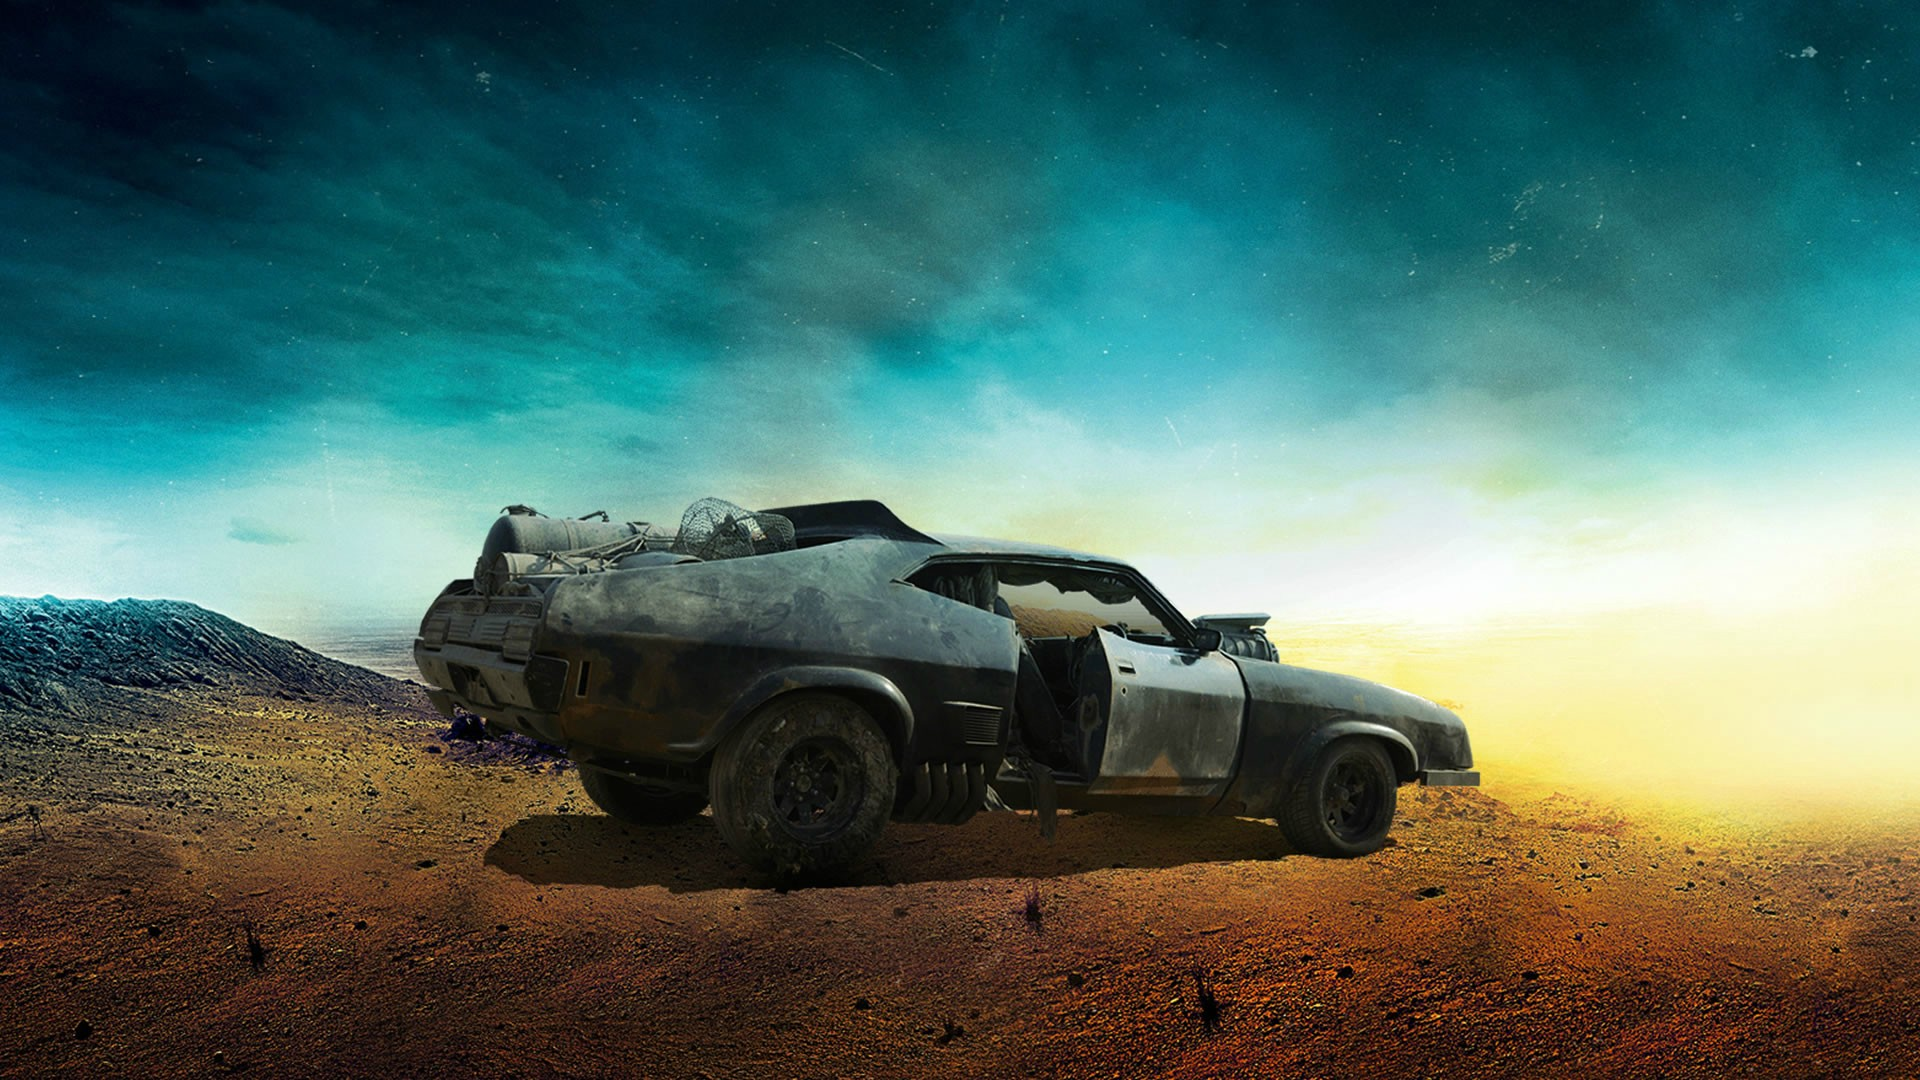 Mad Max Fury Road Vehicles 1920 x 1080 Wallpaper - Album on Imgur